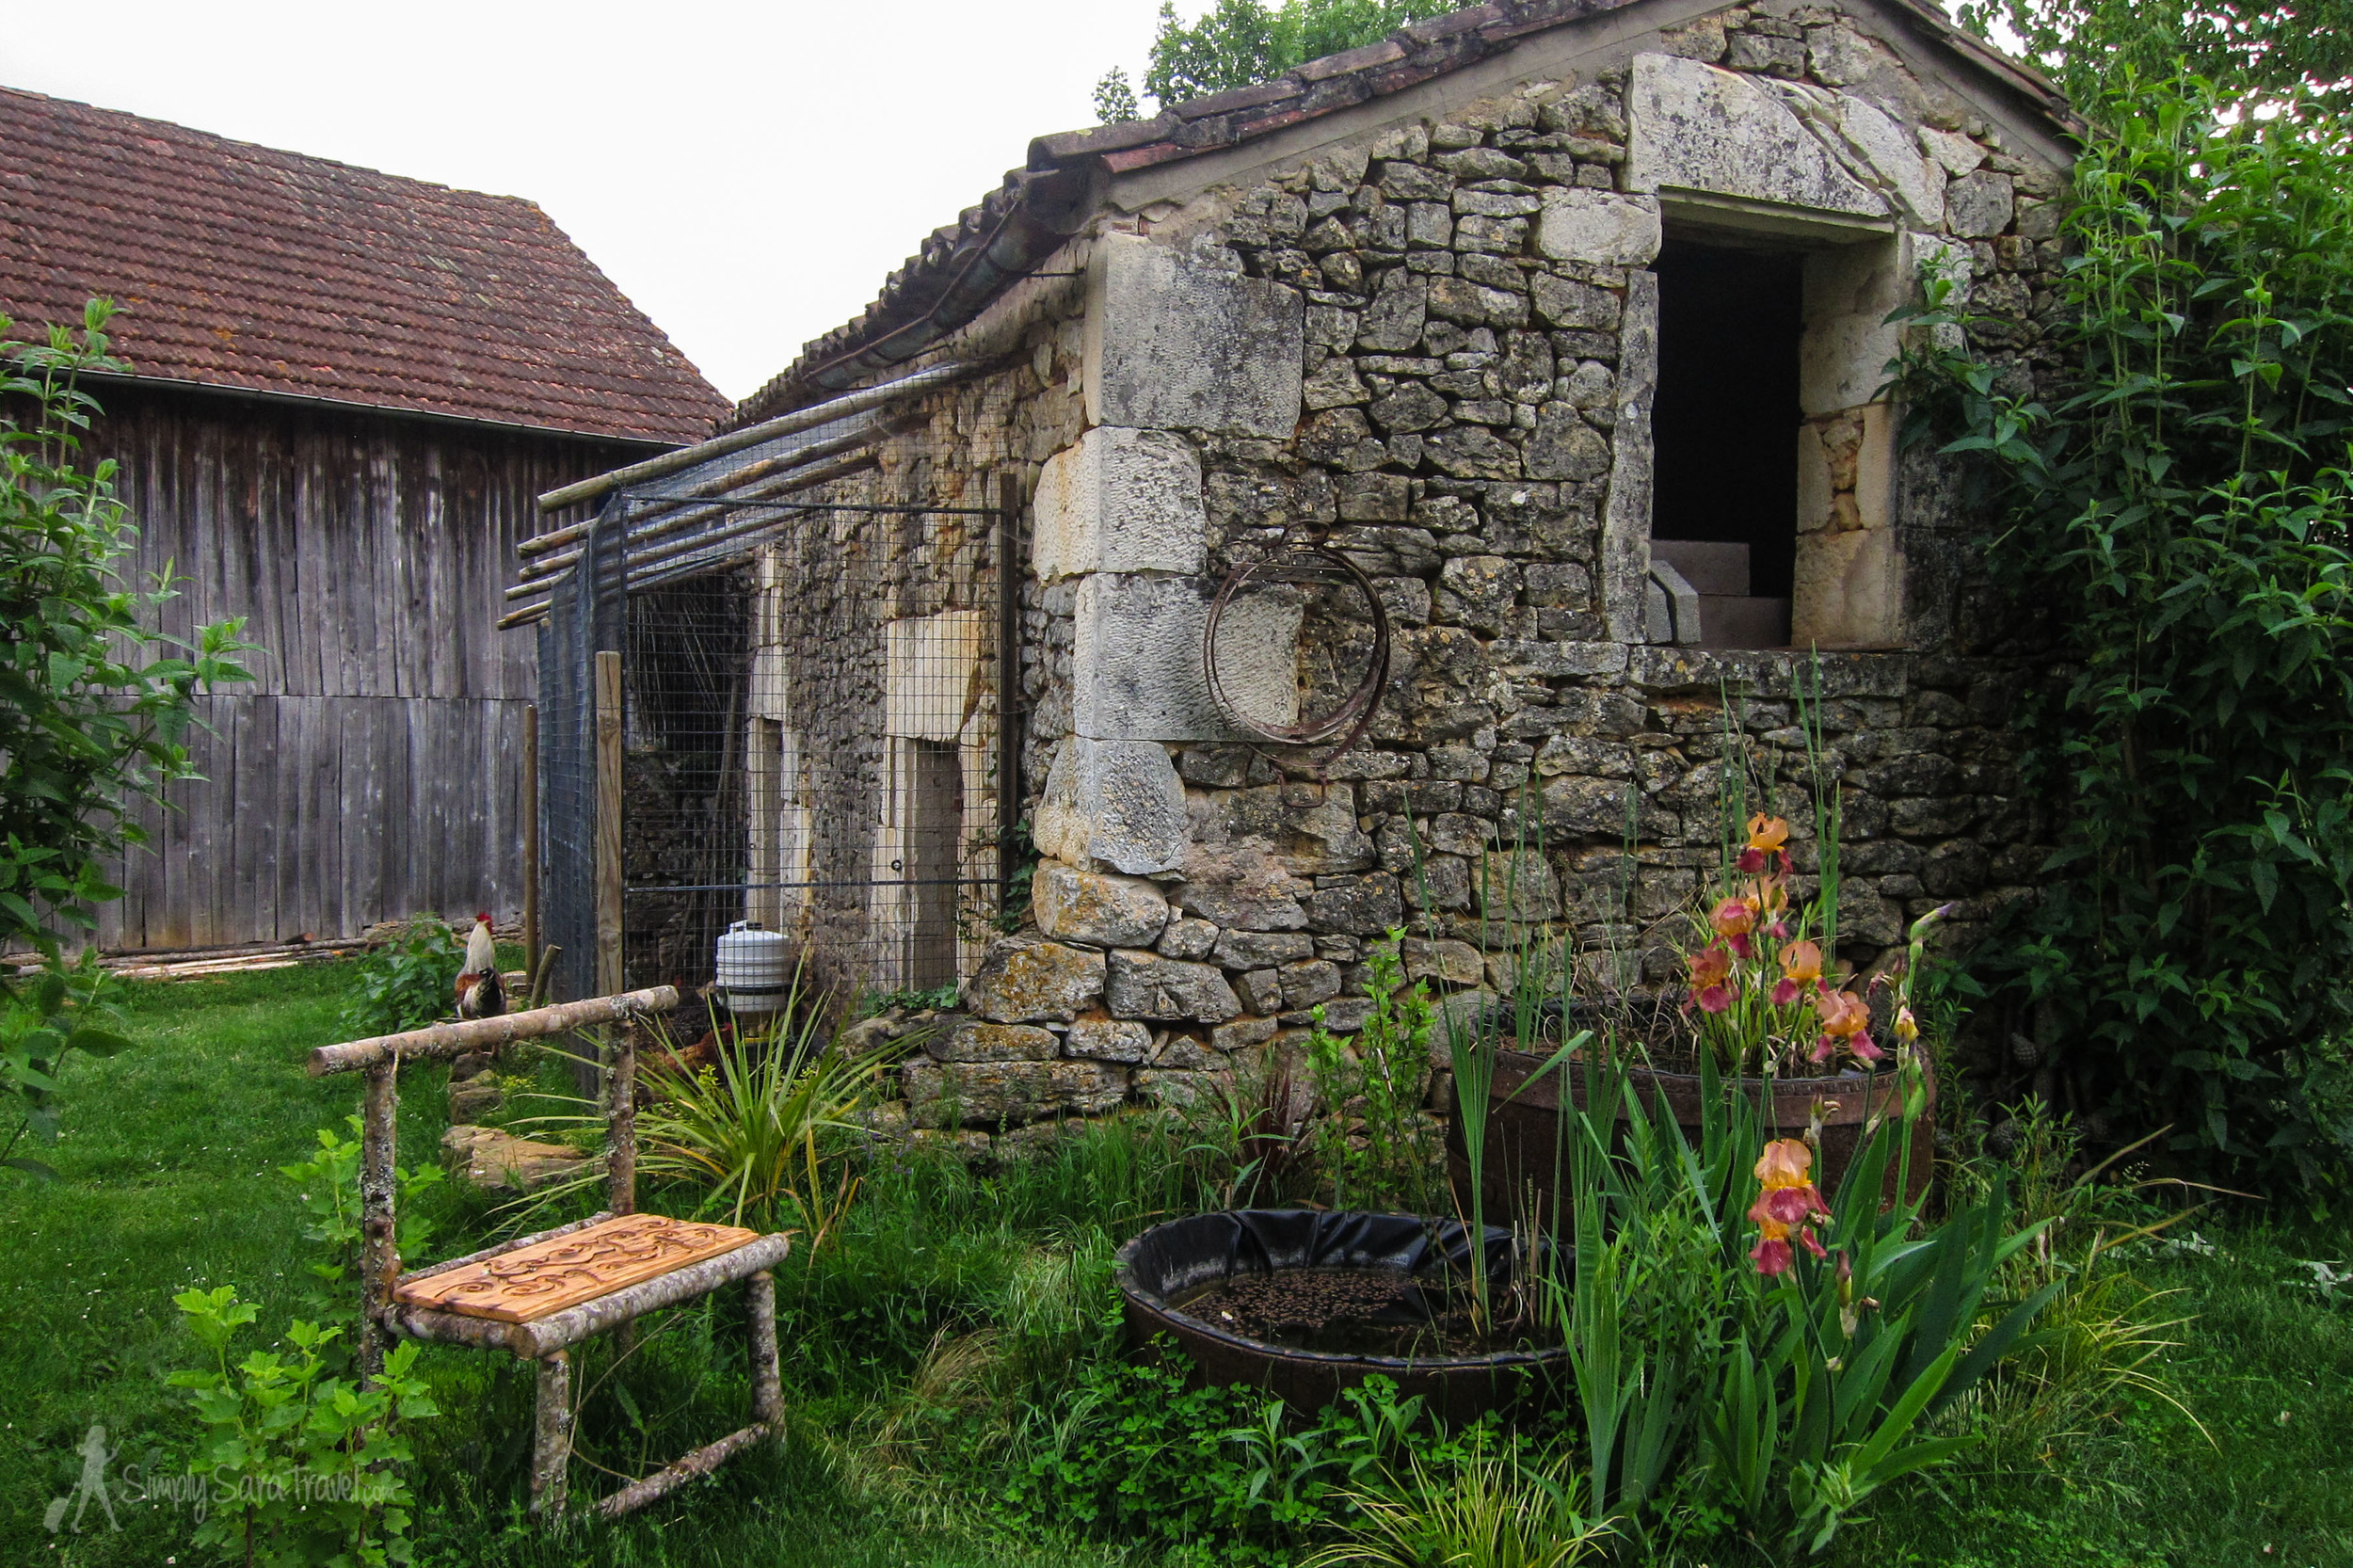 Part of the French farm we stayed on in Dordogne